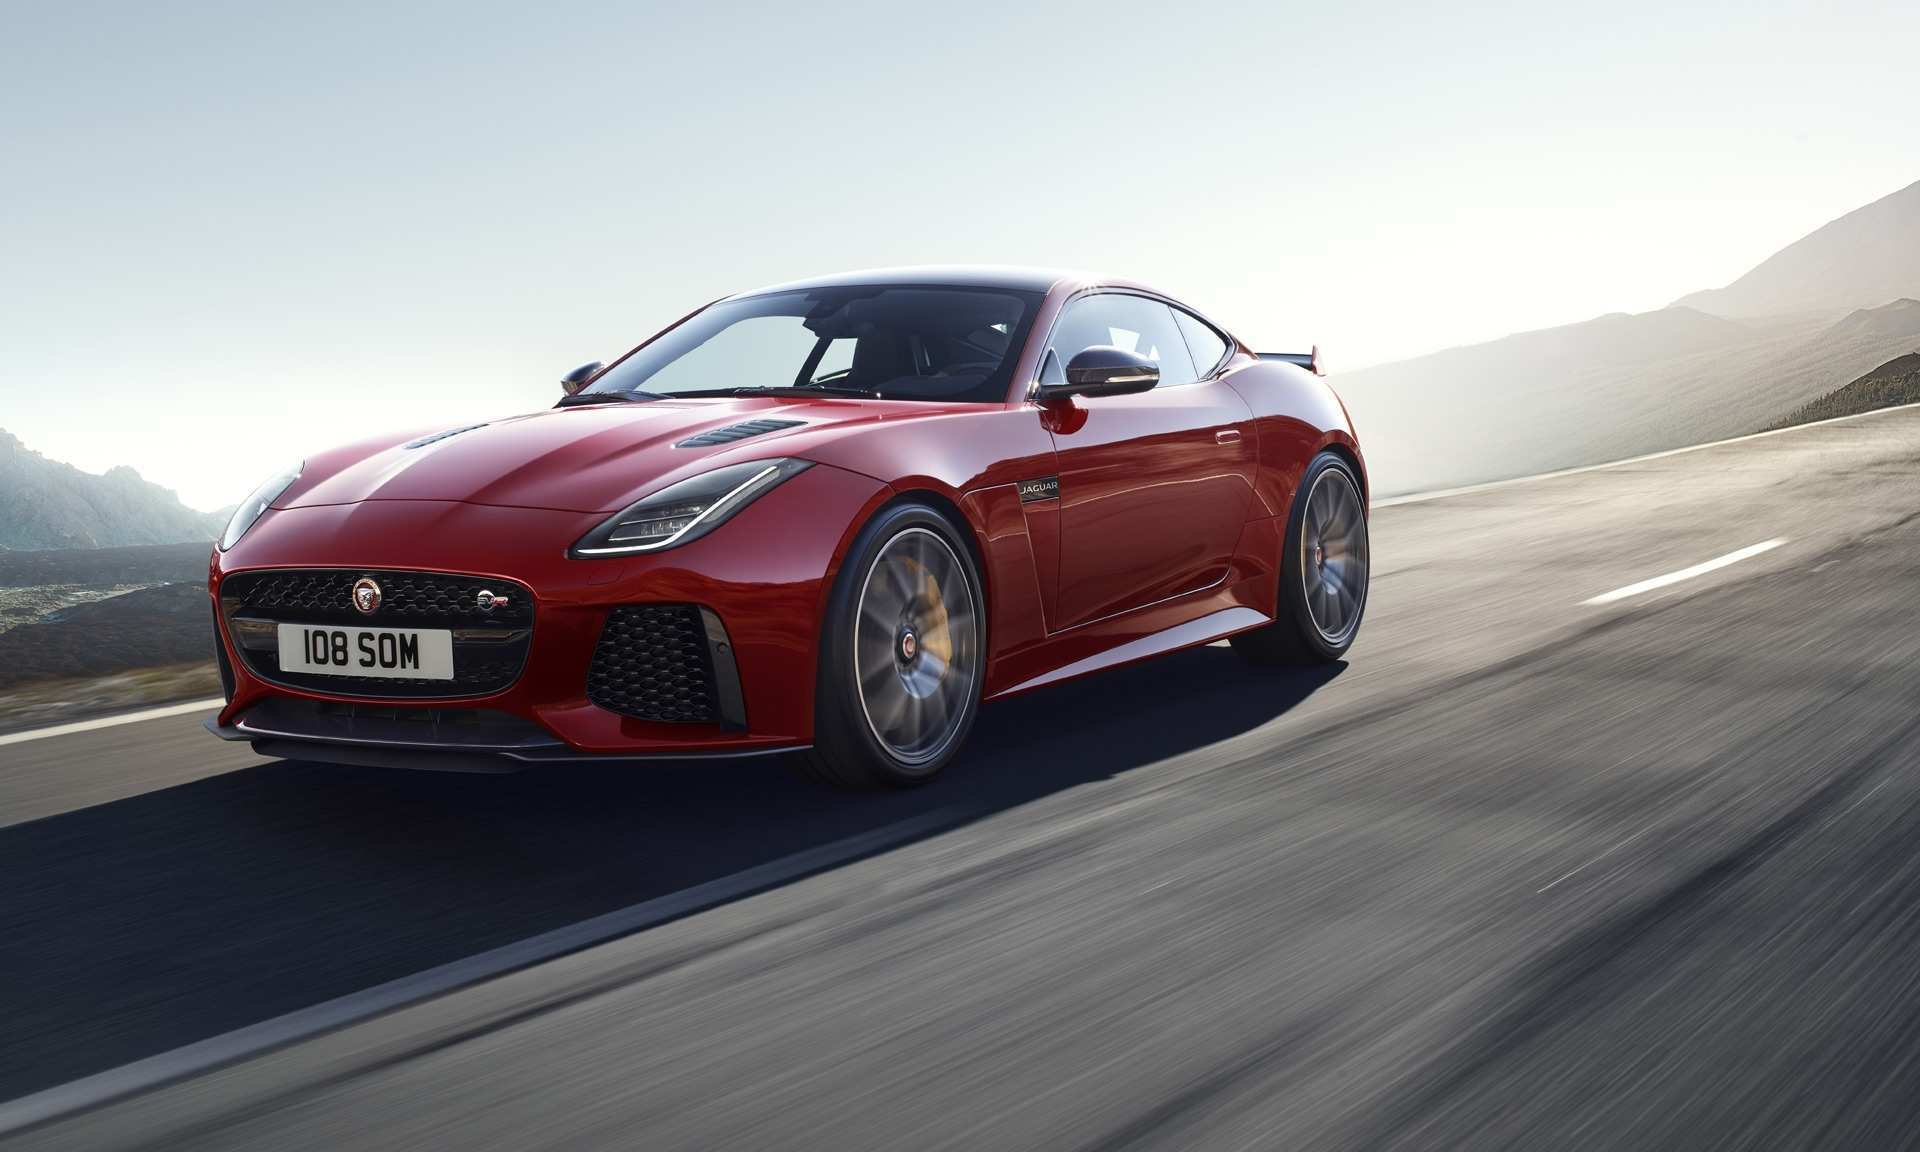 63 New The 2019 Jaguar Vehicles Concept Redesign And Review Specs and Review by The 2019 Jaguar Vehicles Concept Redesign And Review